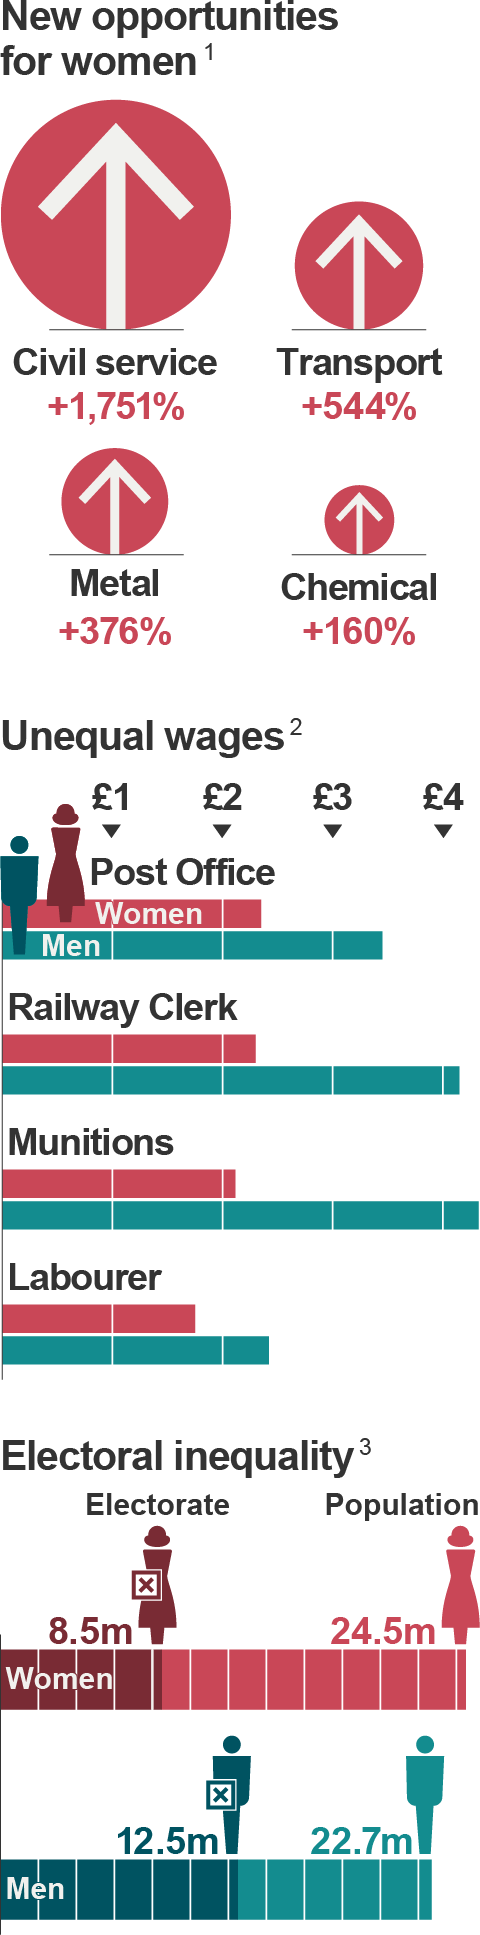 There were new job opportunities for women, but wages were low and electoral inequality remained.